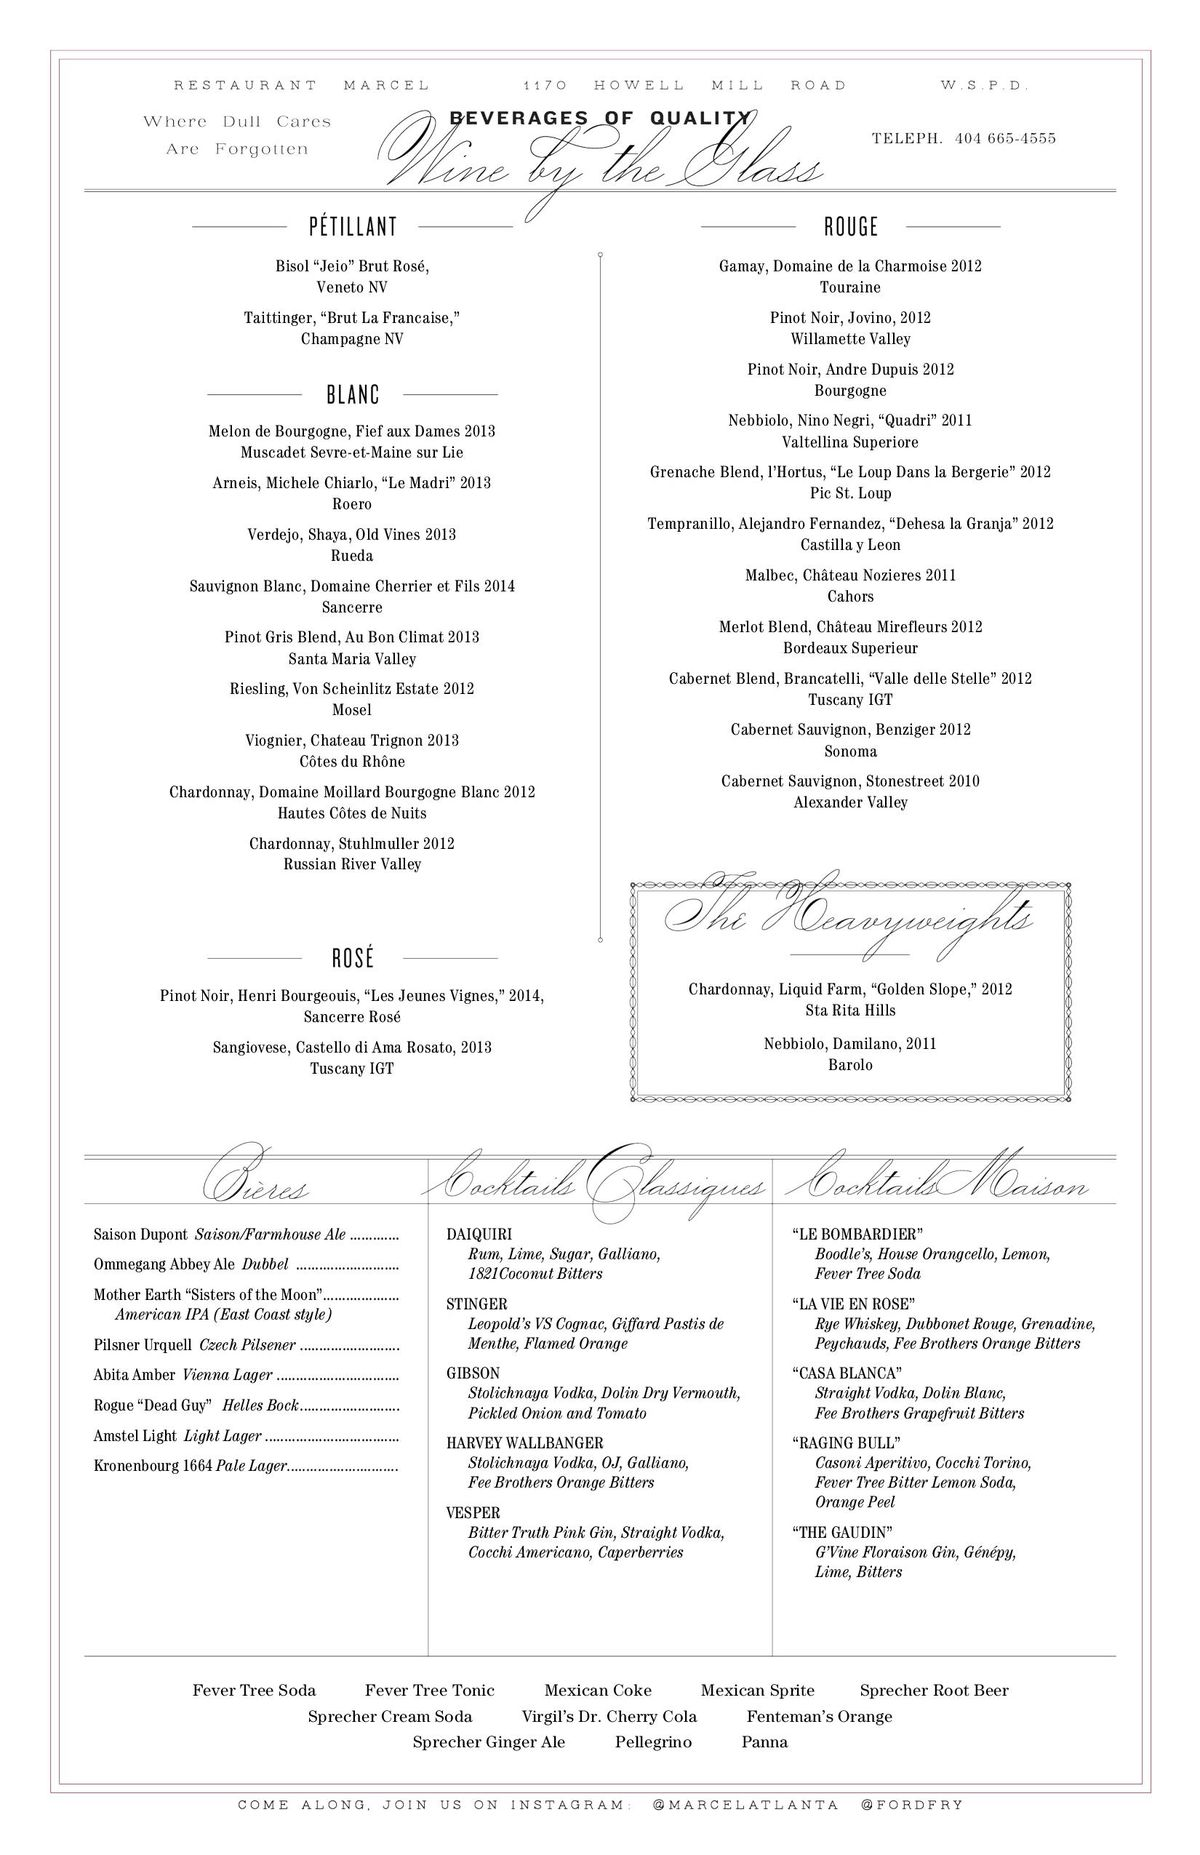 Ford Fry\'s Marcel Begins Service TODAY; Take a Look at the Menu ...